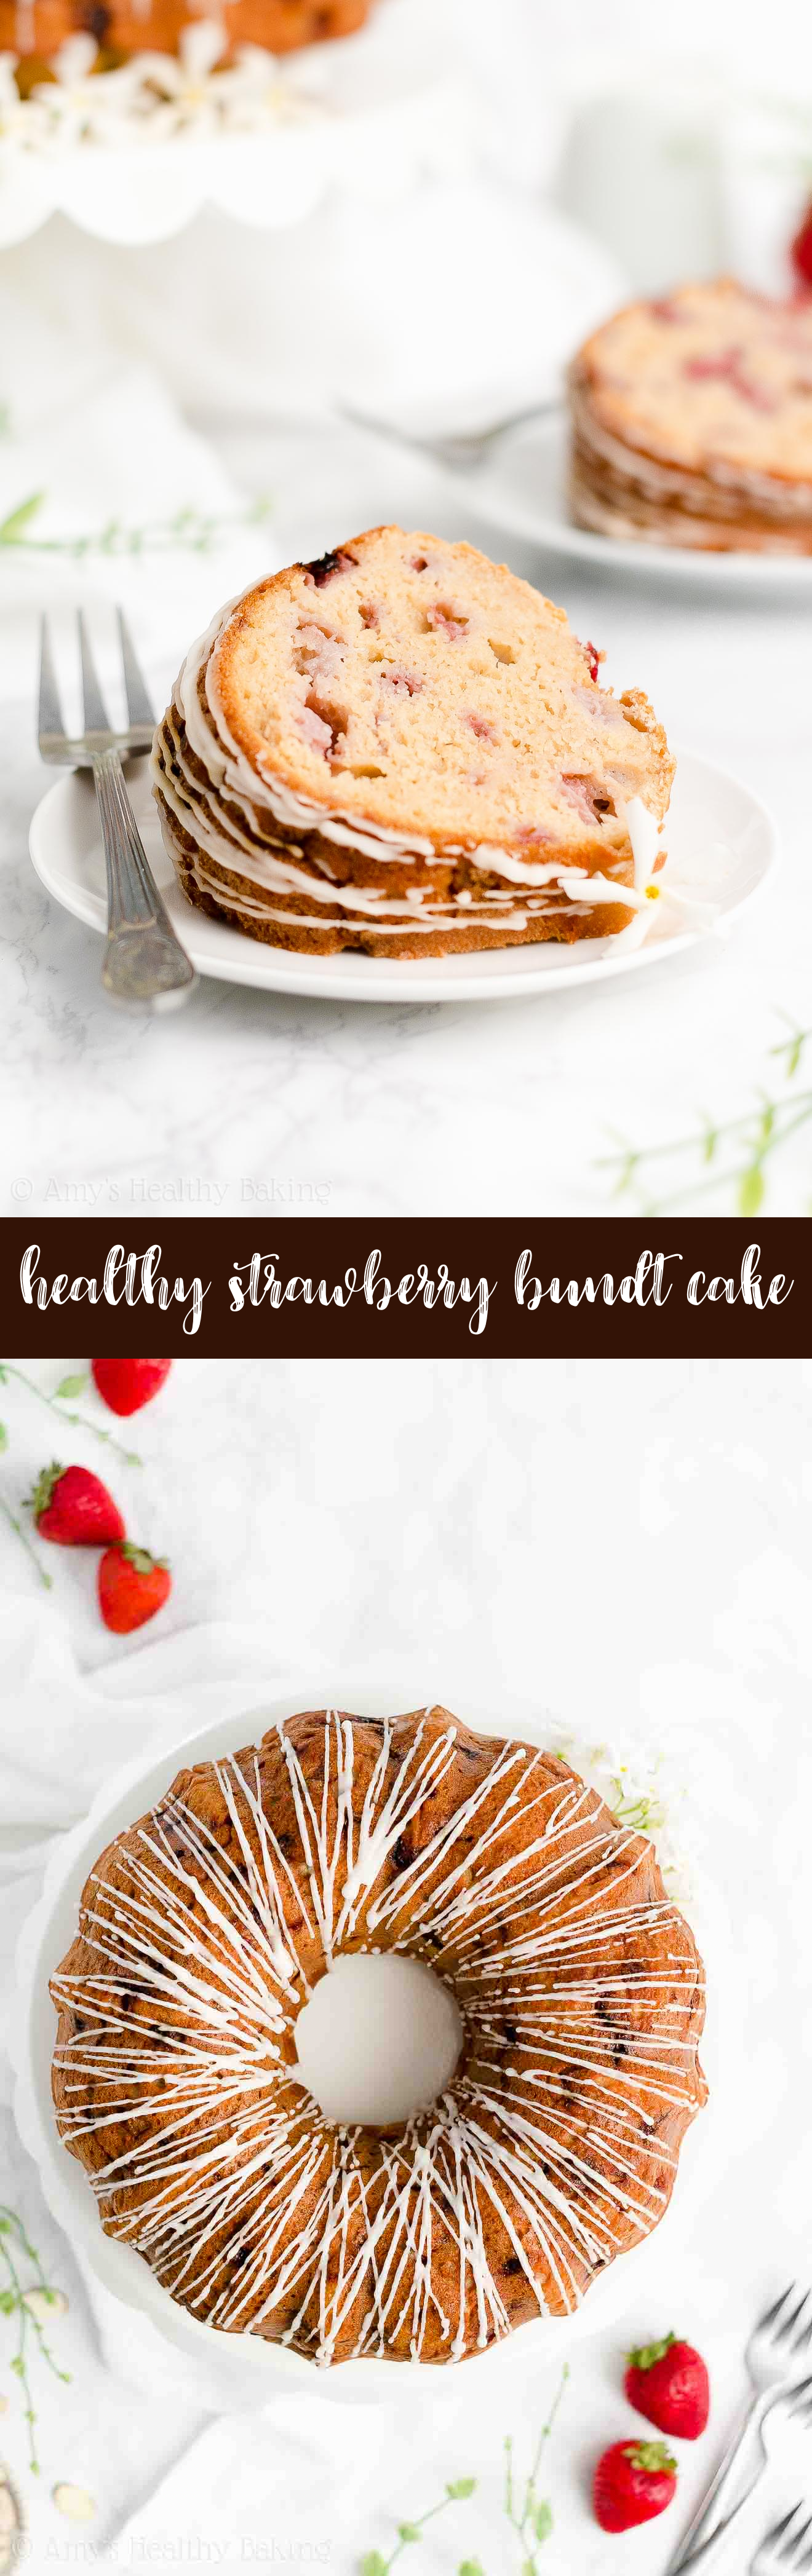 Best Easy Healthy Gluten Free Greek Yogurt Moist Fresh Strawberry Bundt Cake